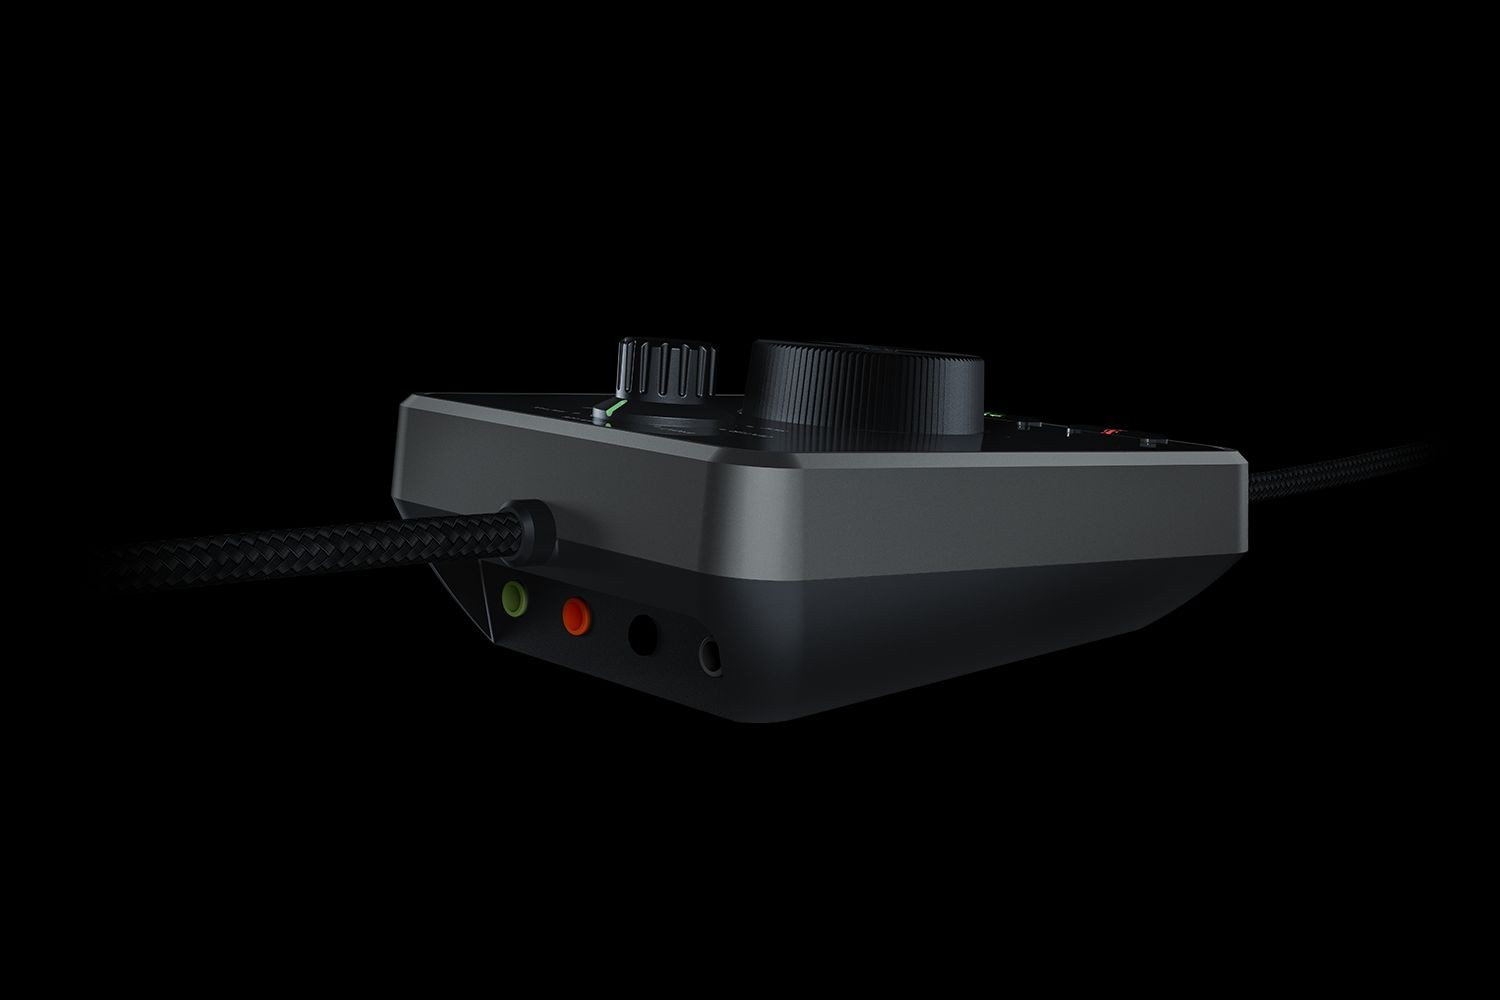 Razer Announces the Tiamat 7.1 V2 Flagship Surround-Sound Headset